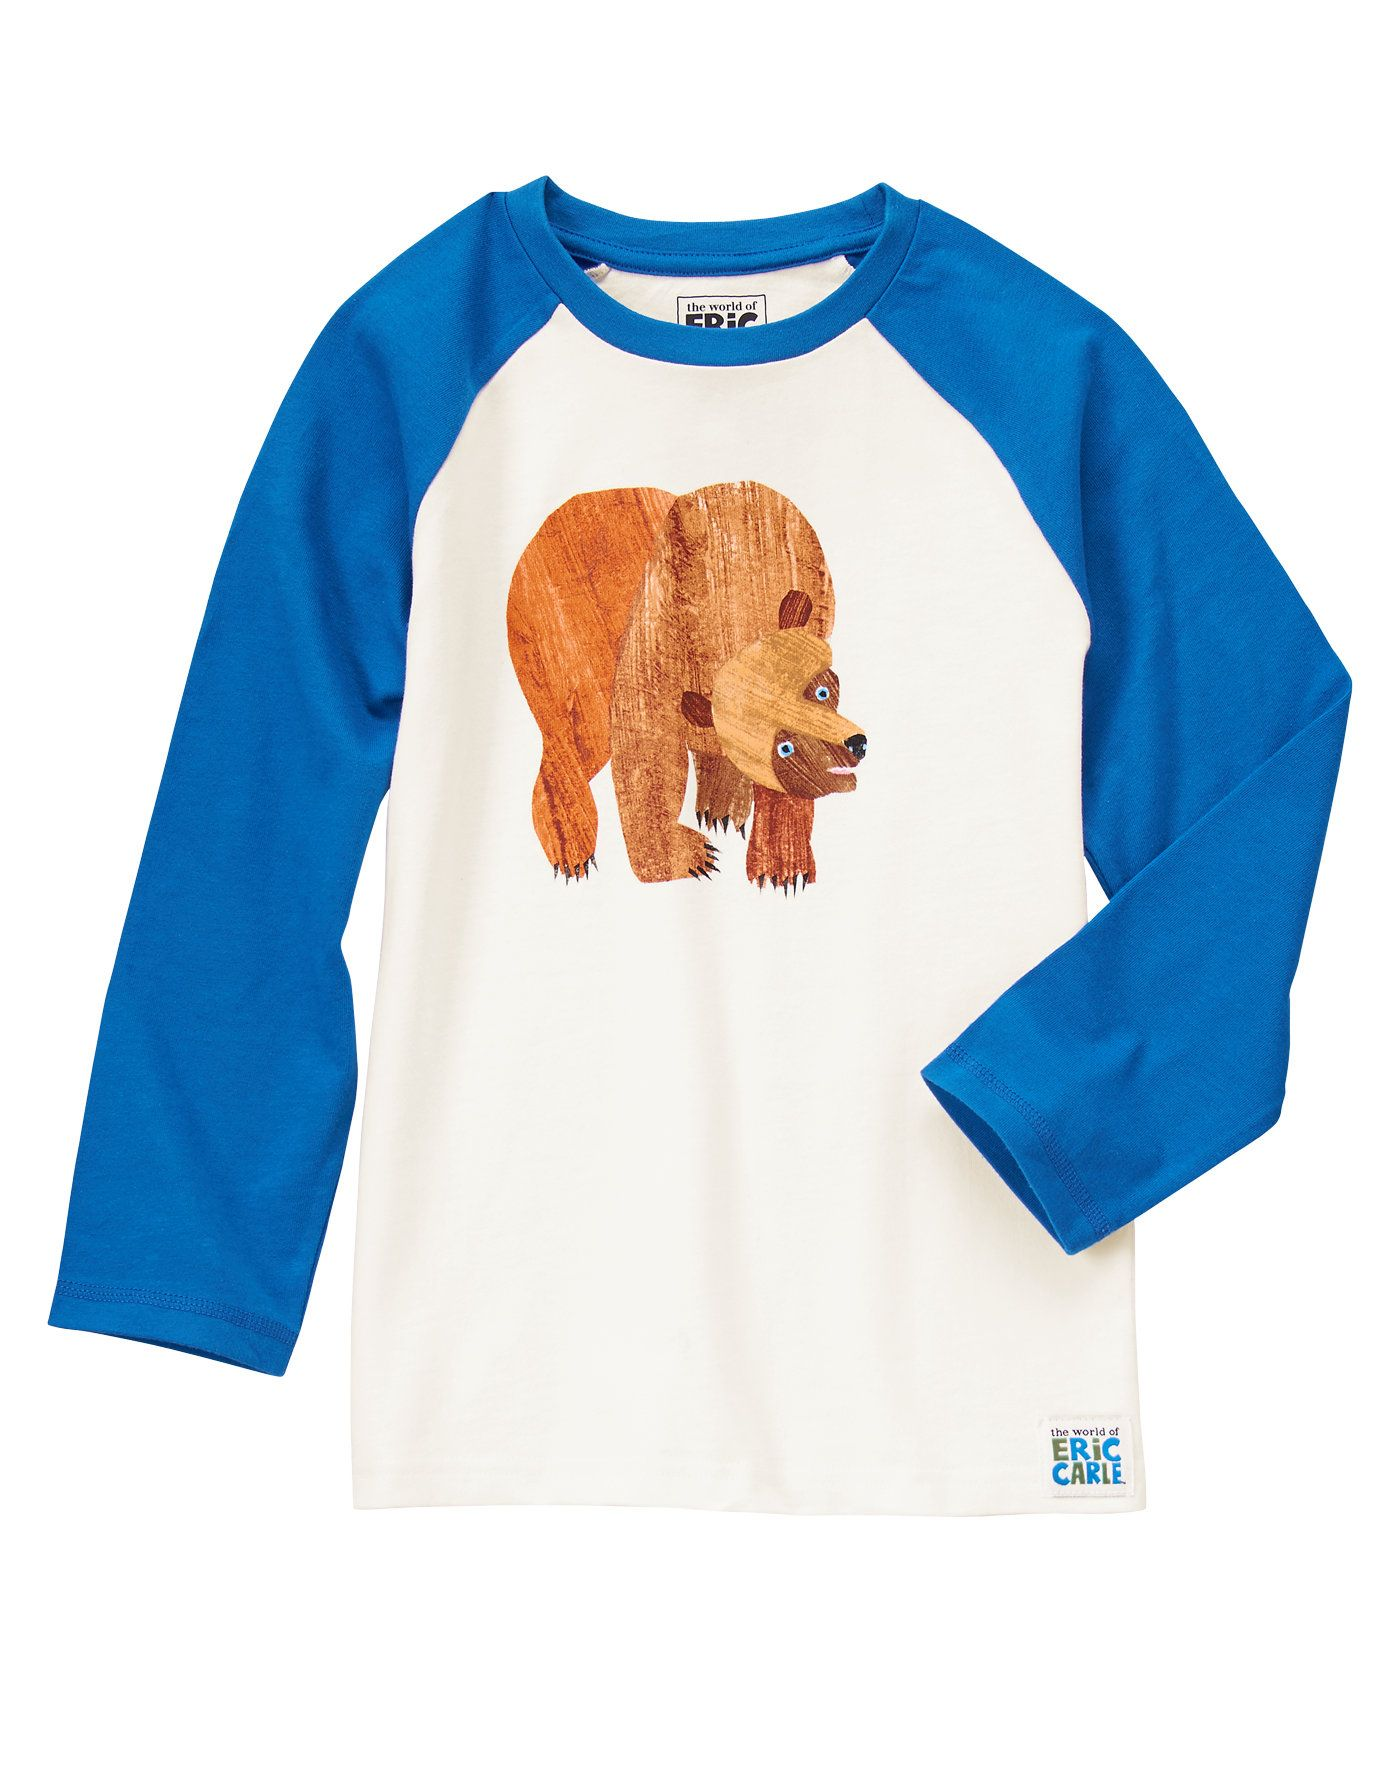 22221a664ef8 Such a great idea for a clothes line.... but not a fan of baseball tees The  World of Eric Carle™Bear Tee at Gymboree